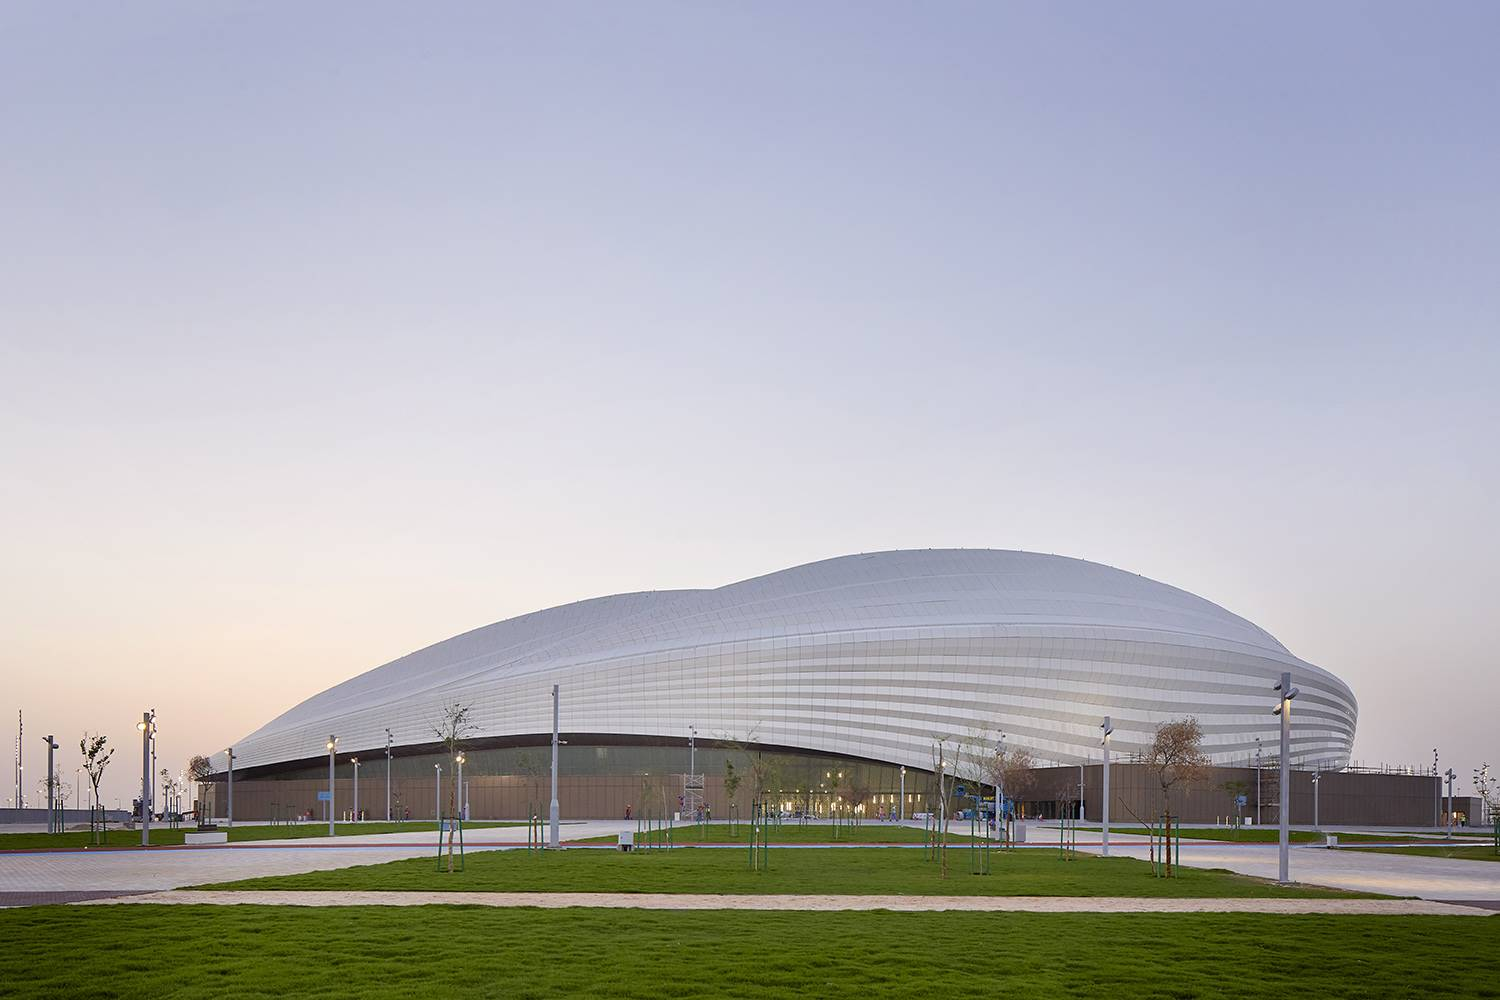 Estadio Al Janoub, Qatar, Zaha Hadid Architects